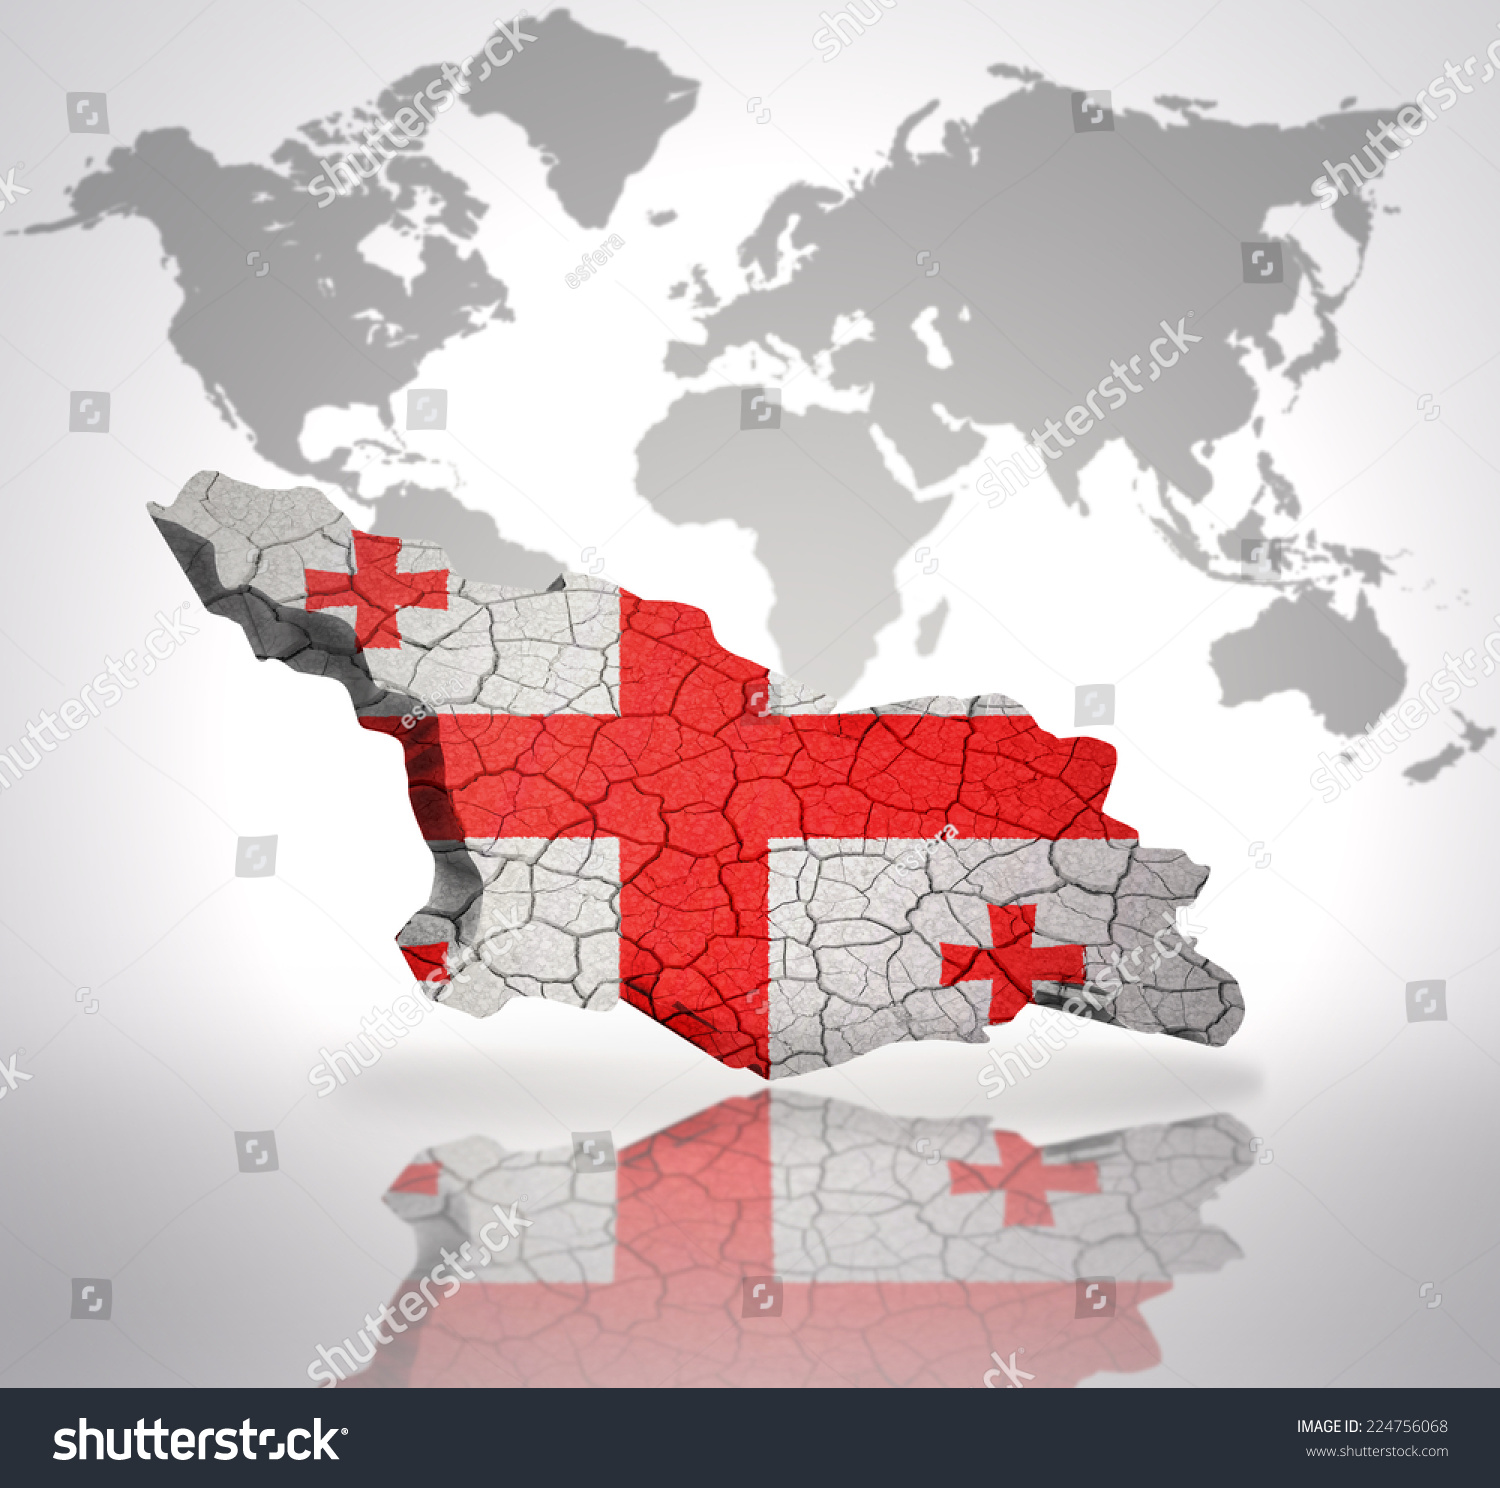 Map georgia georgian flag on world stock illustration 224756068 map georgia georgian flag on world stock illustration 224756068 shutterstock gumiabroncs Image collections